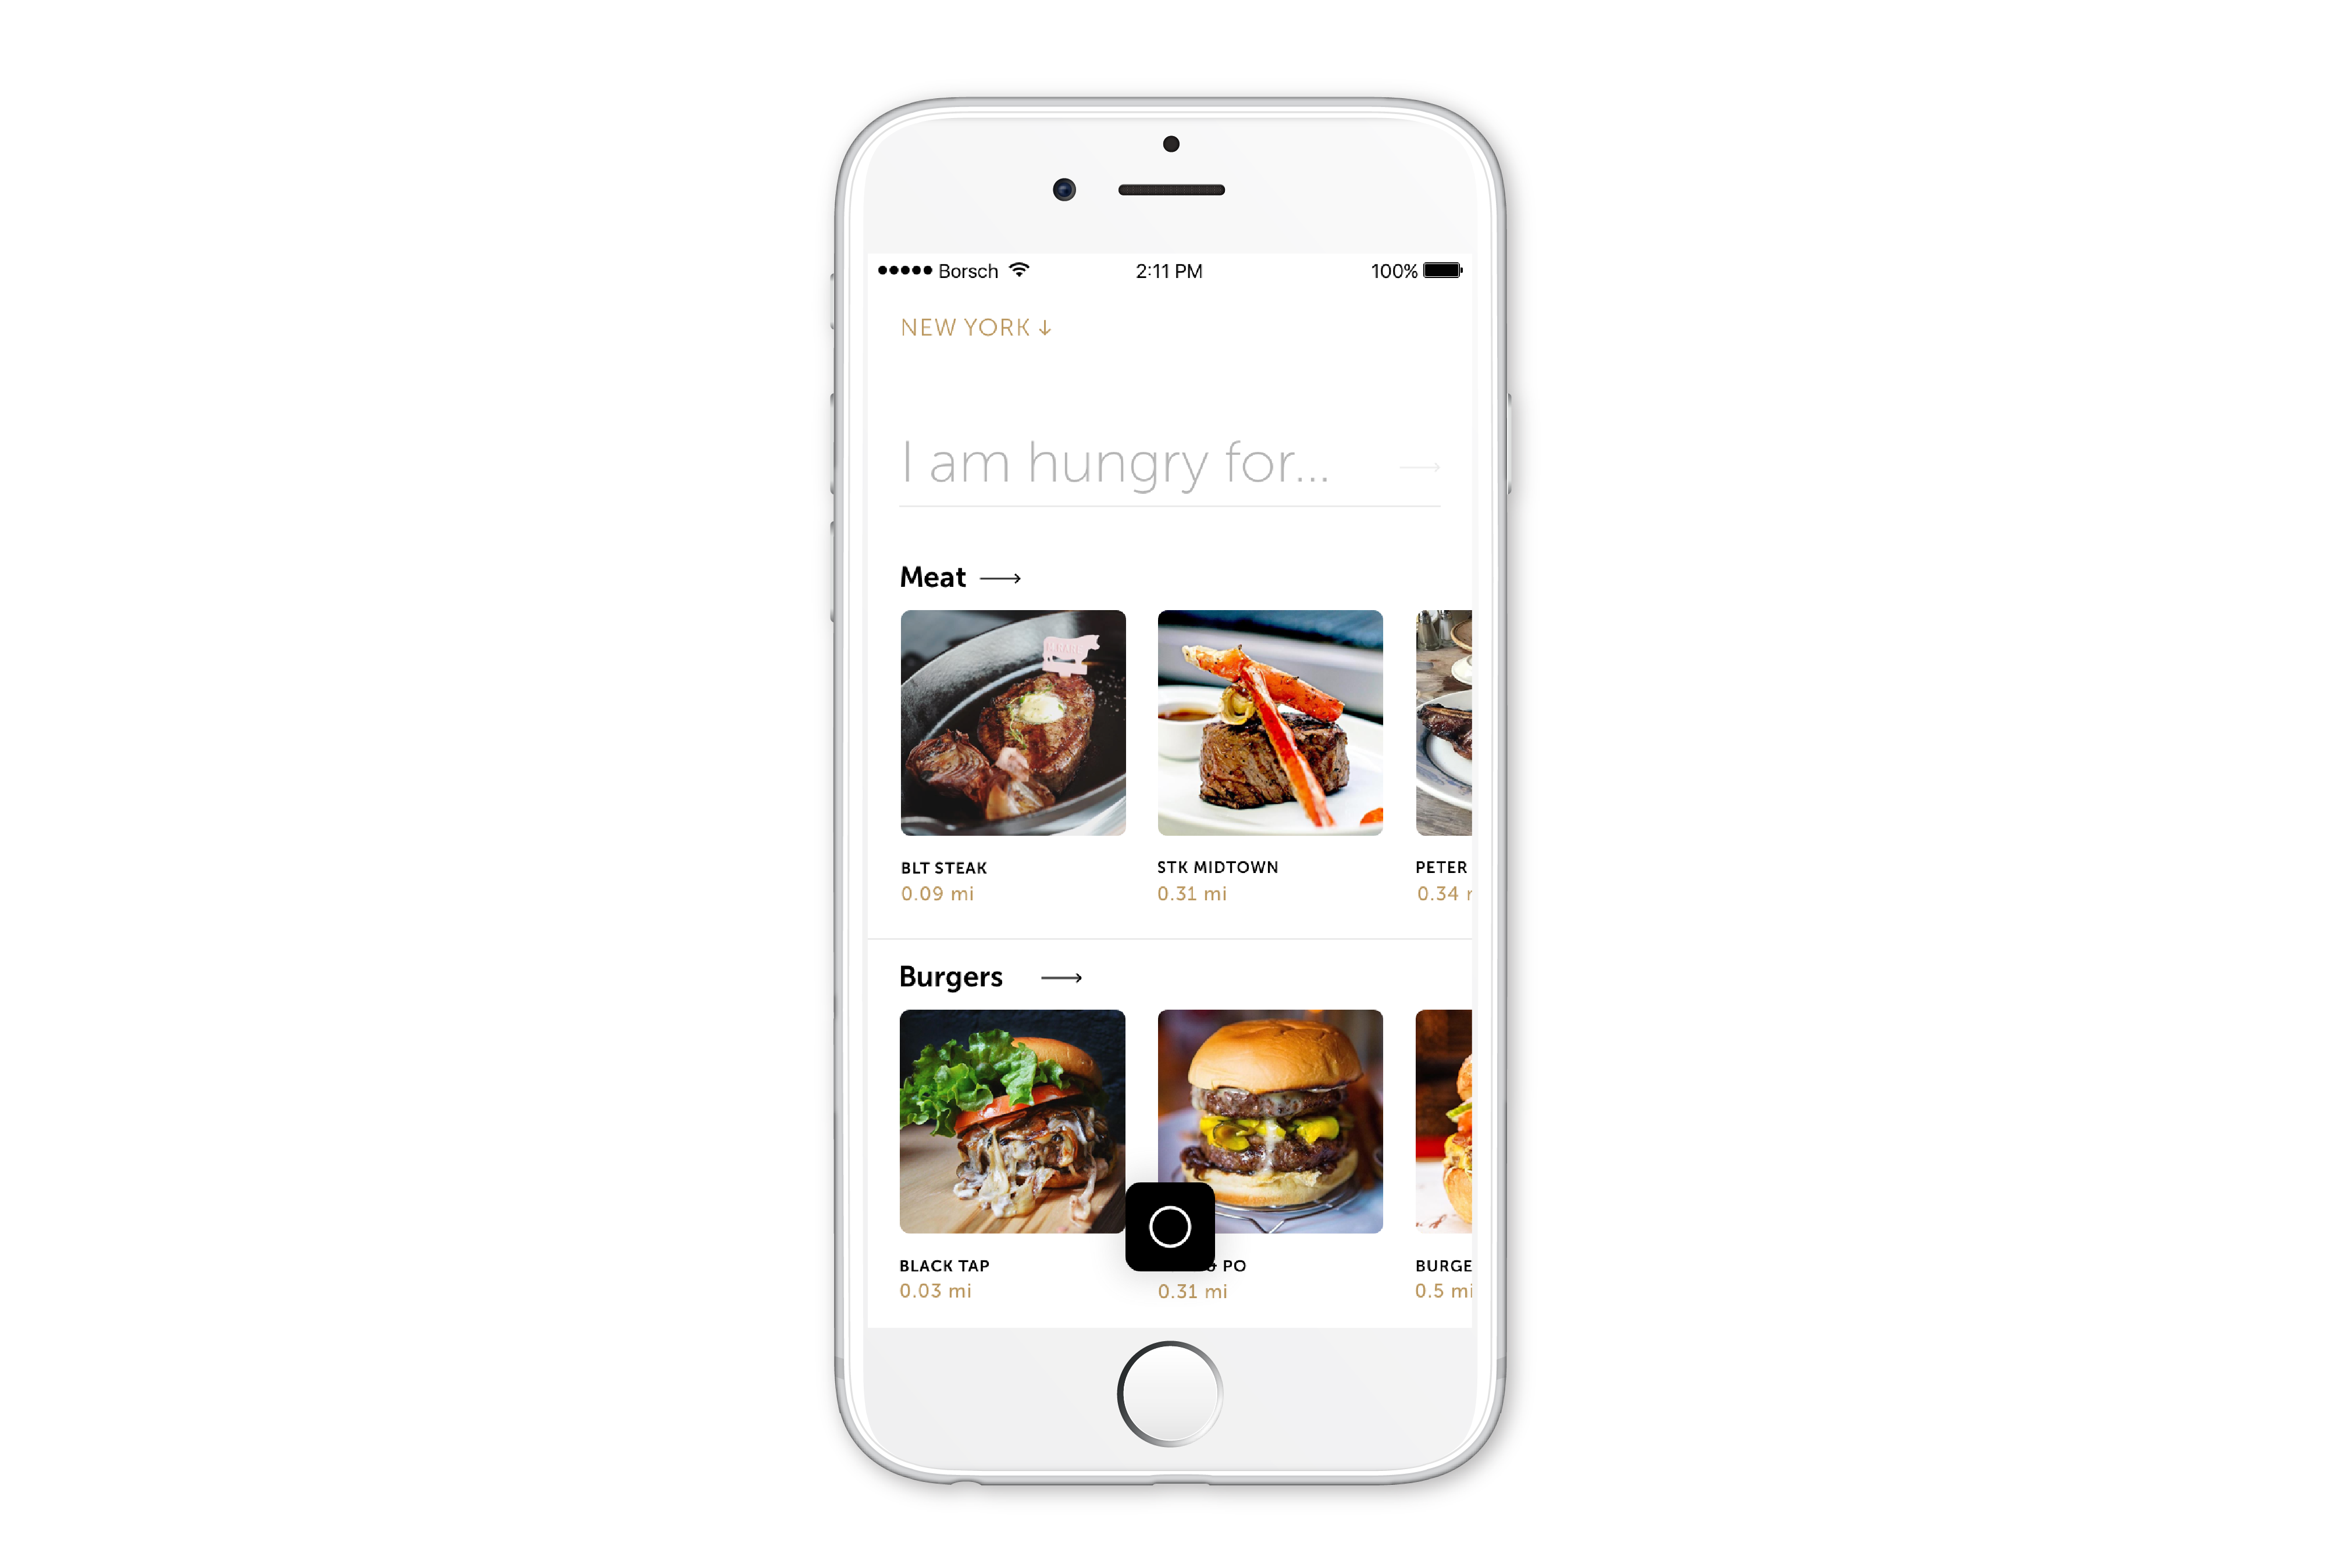 In the Spot of the Day section the app suggests cafes and restaurants that it considers the most delicious, while in Trending Now you can find places where users are posting photos of dishes in real time. Source: Press photo